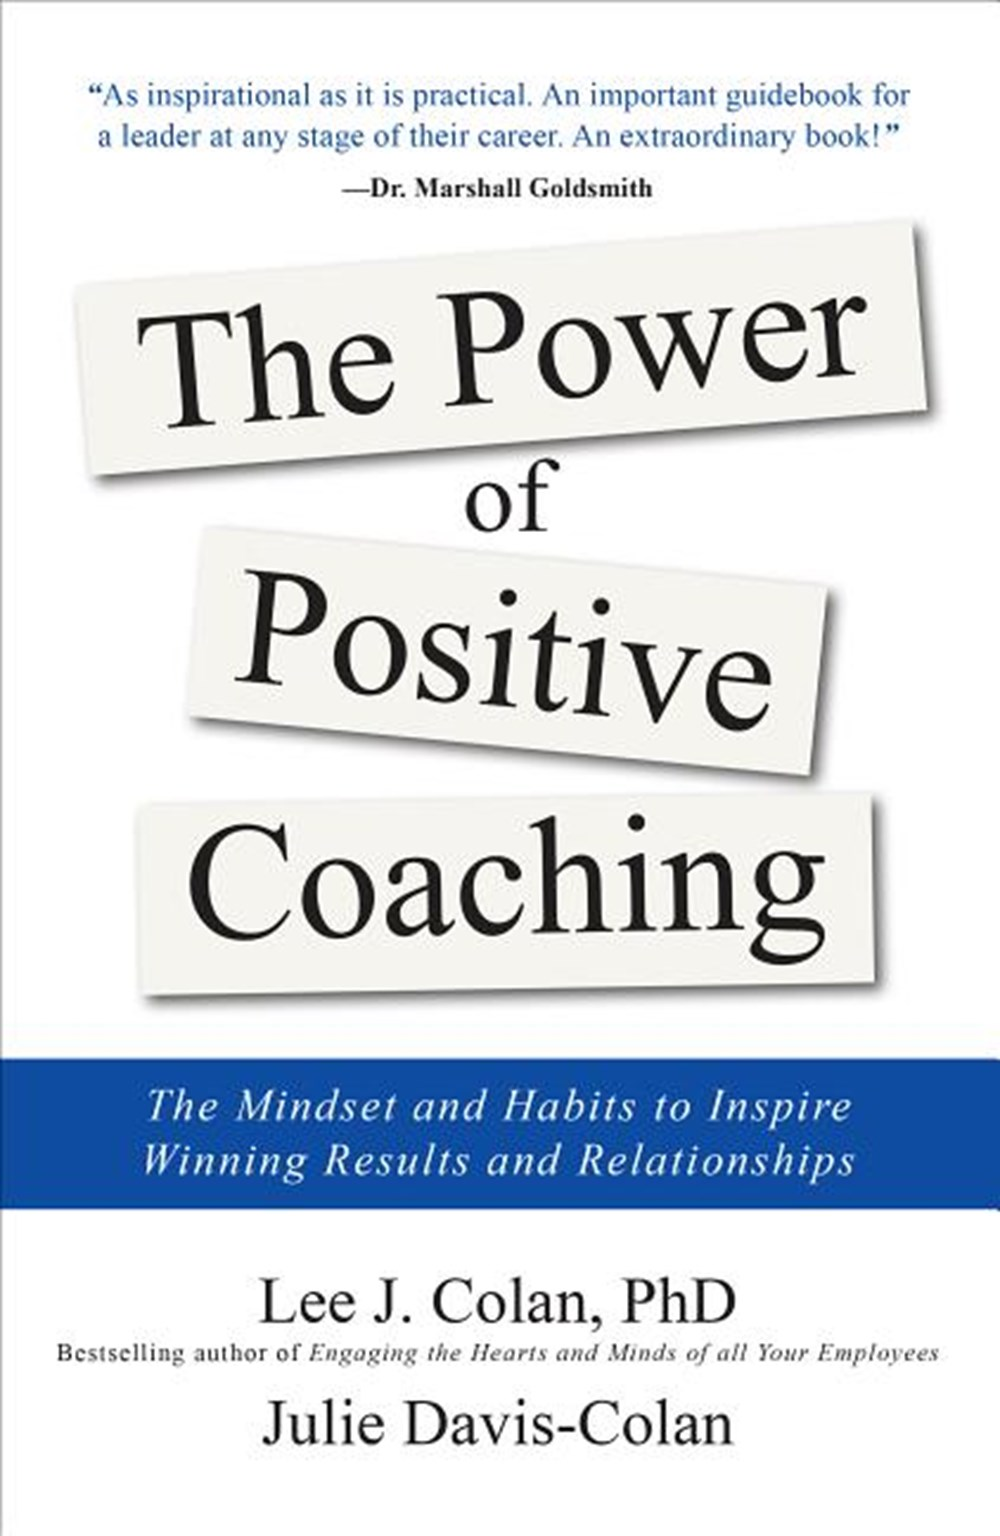 Power of Positive Coaching The Mindset and Habits to Inspire Winning Results and Relationships